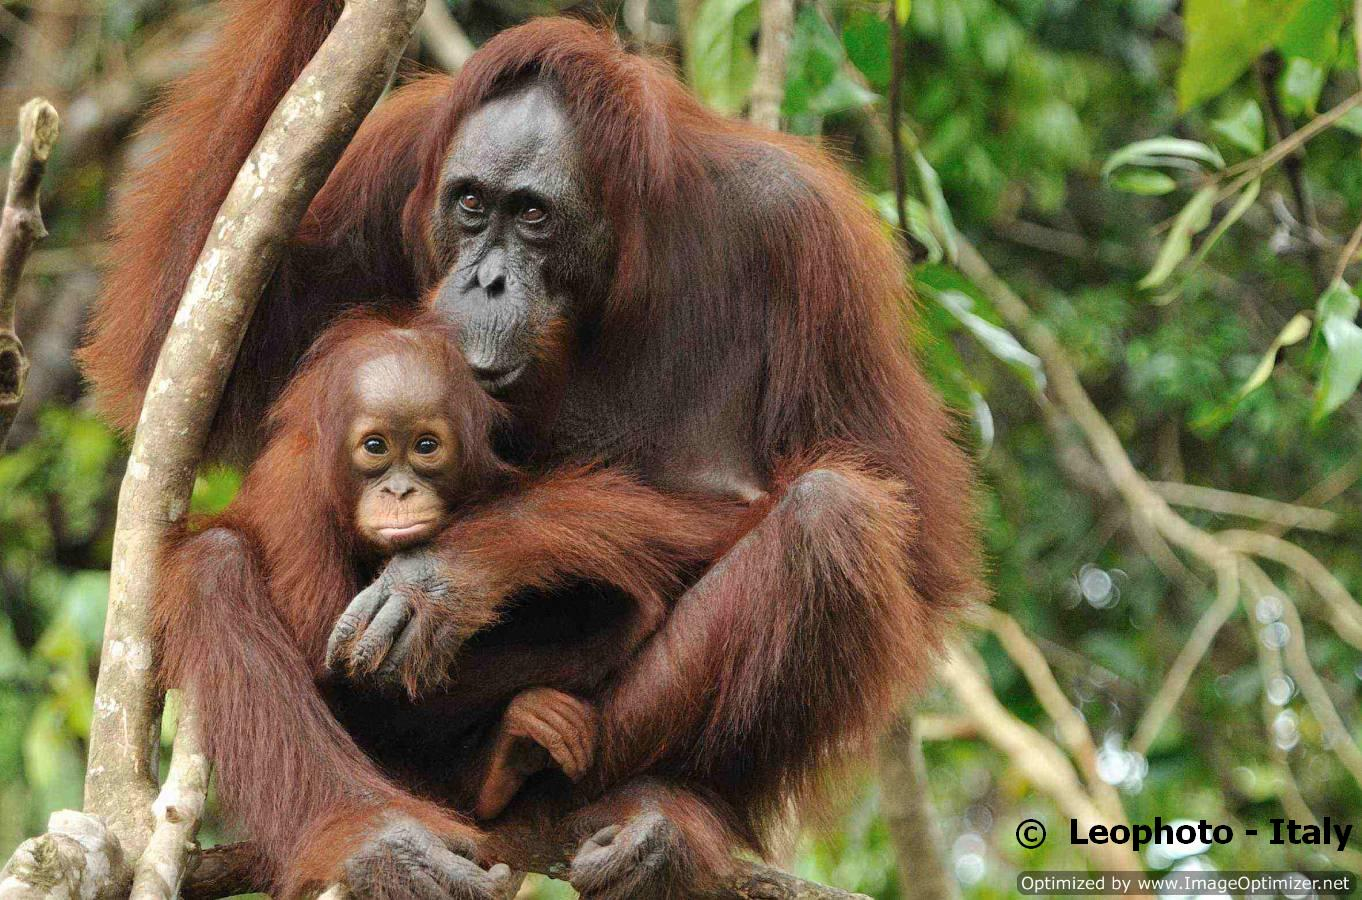 Kutai National Park Tours, Orangutan Safari, wildlife trip, borneo, kalimantan, indonesia, jungle forest